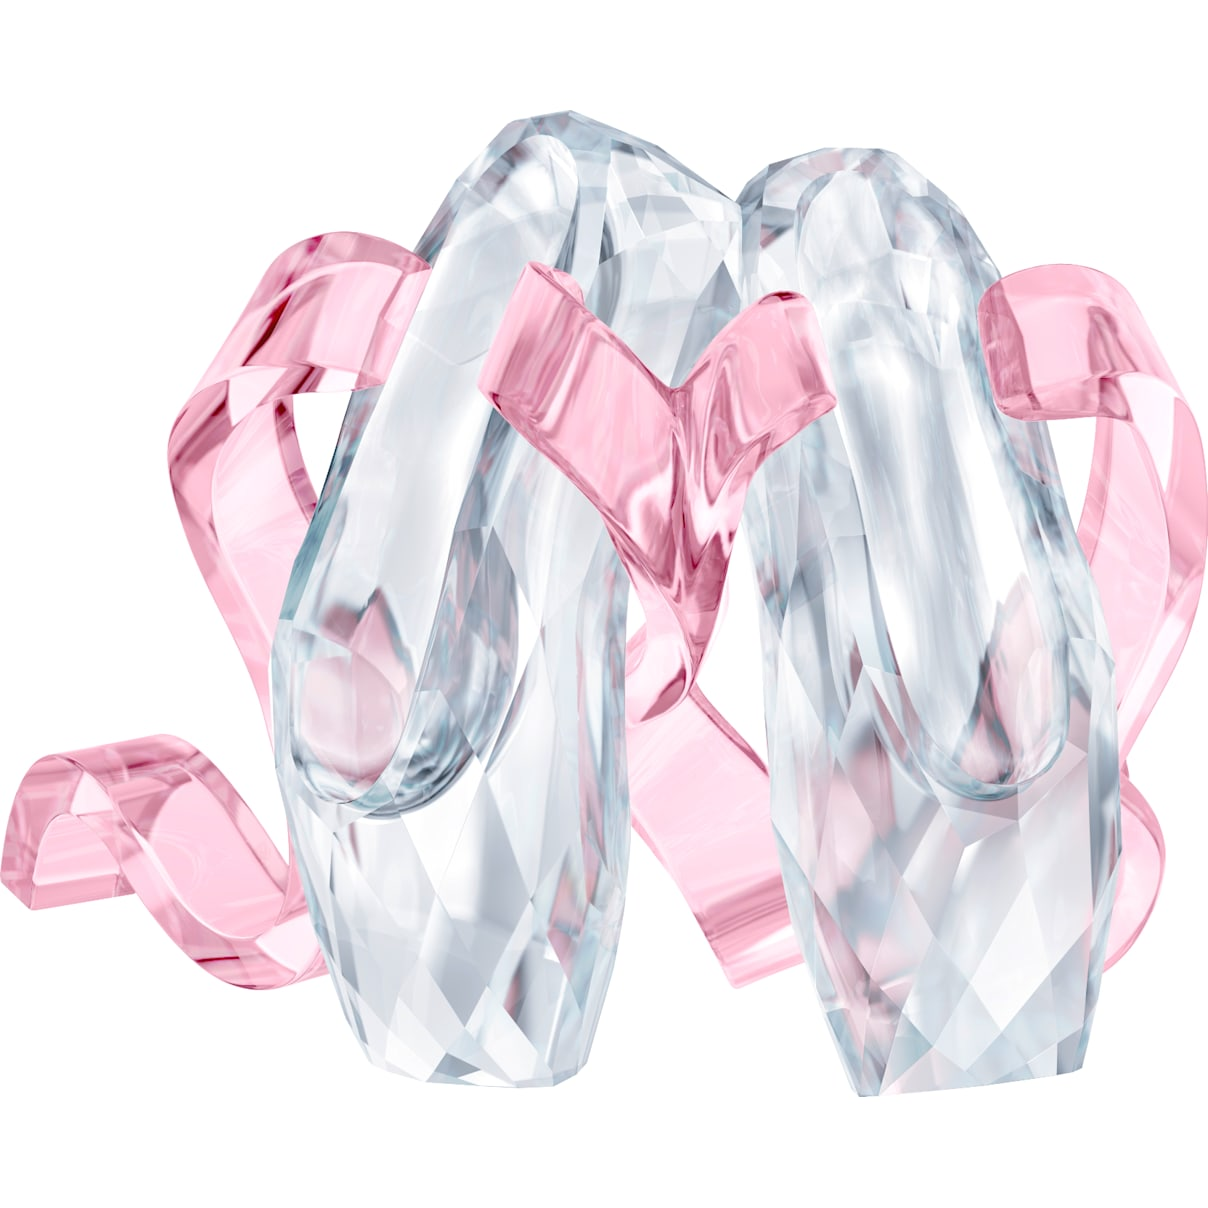 Swarovski Ballet shoes